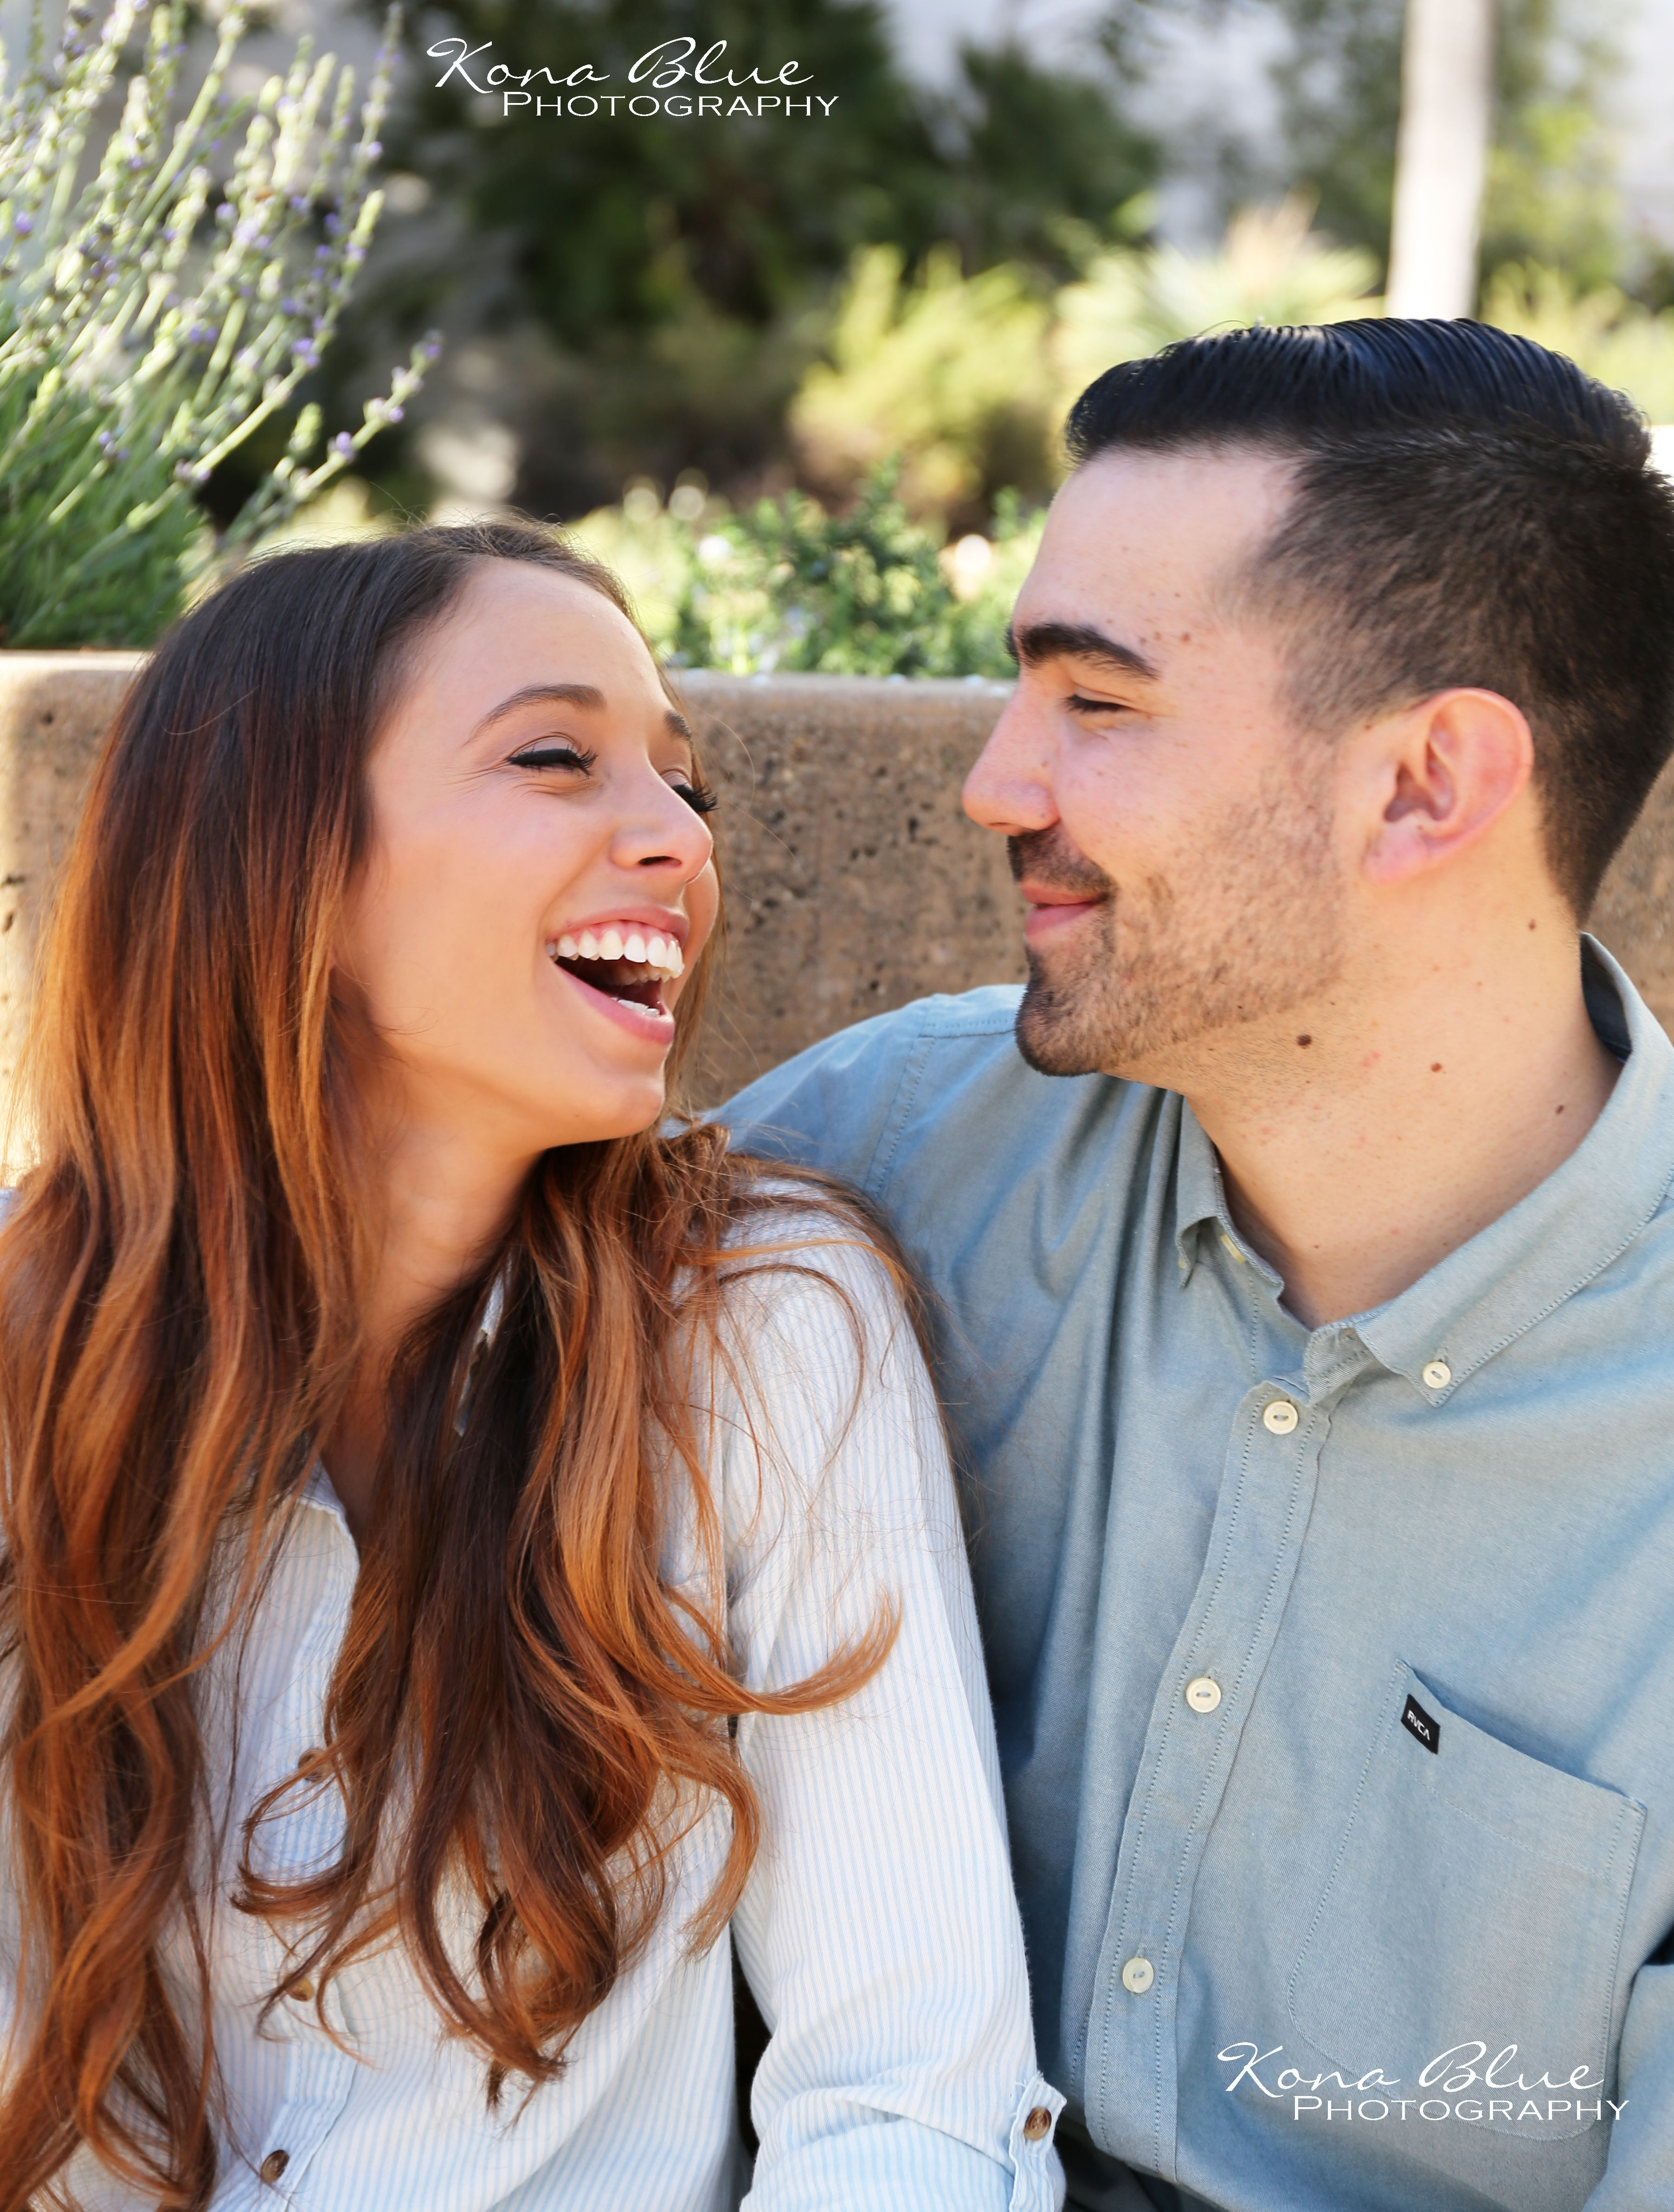 Online Dating Photography San Diego